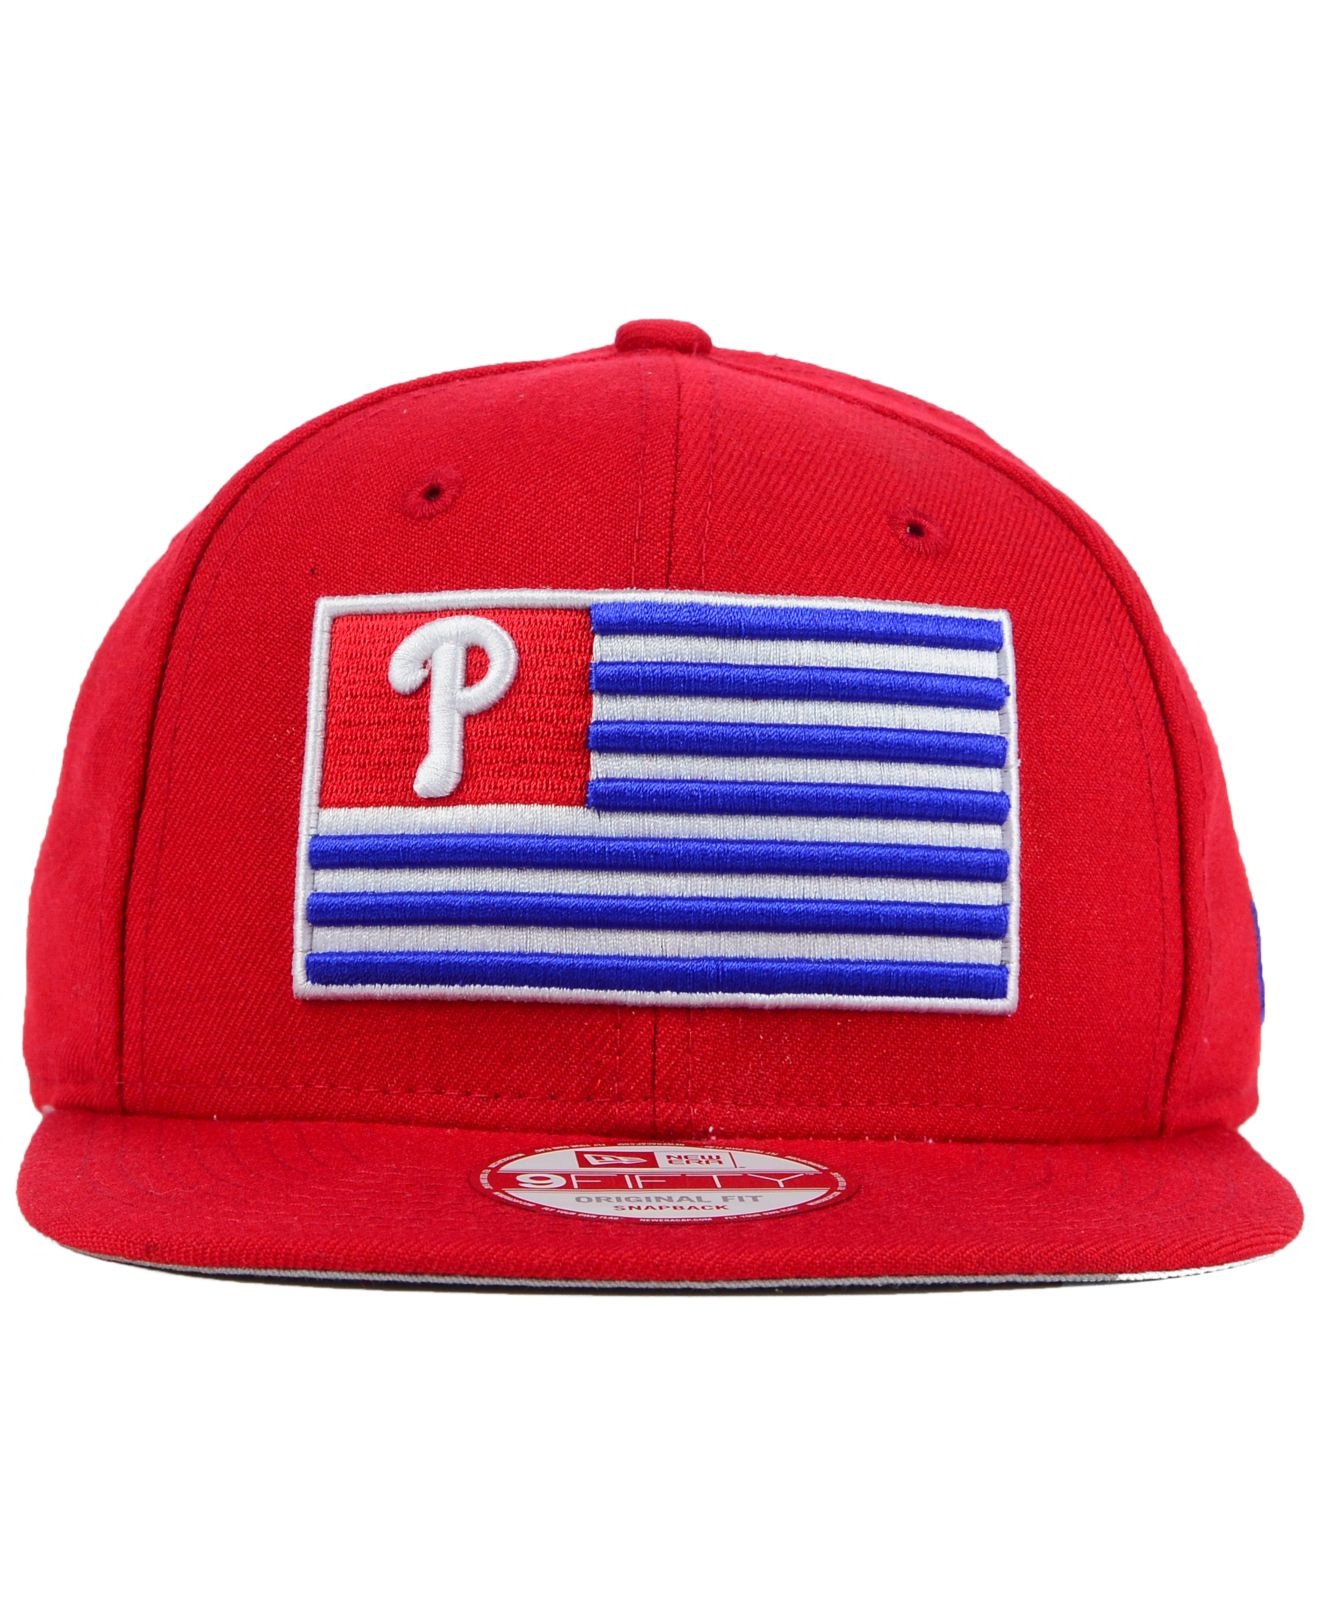 Ktz Philadelphia Phillies Team Merica 9fifty Snapback Cap